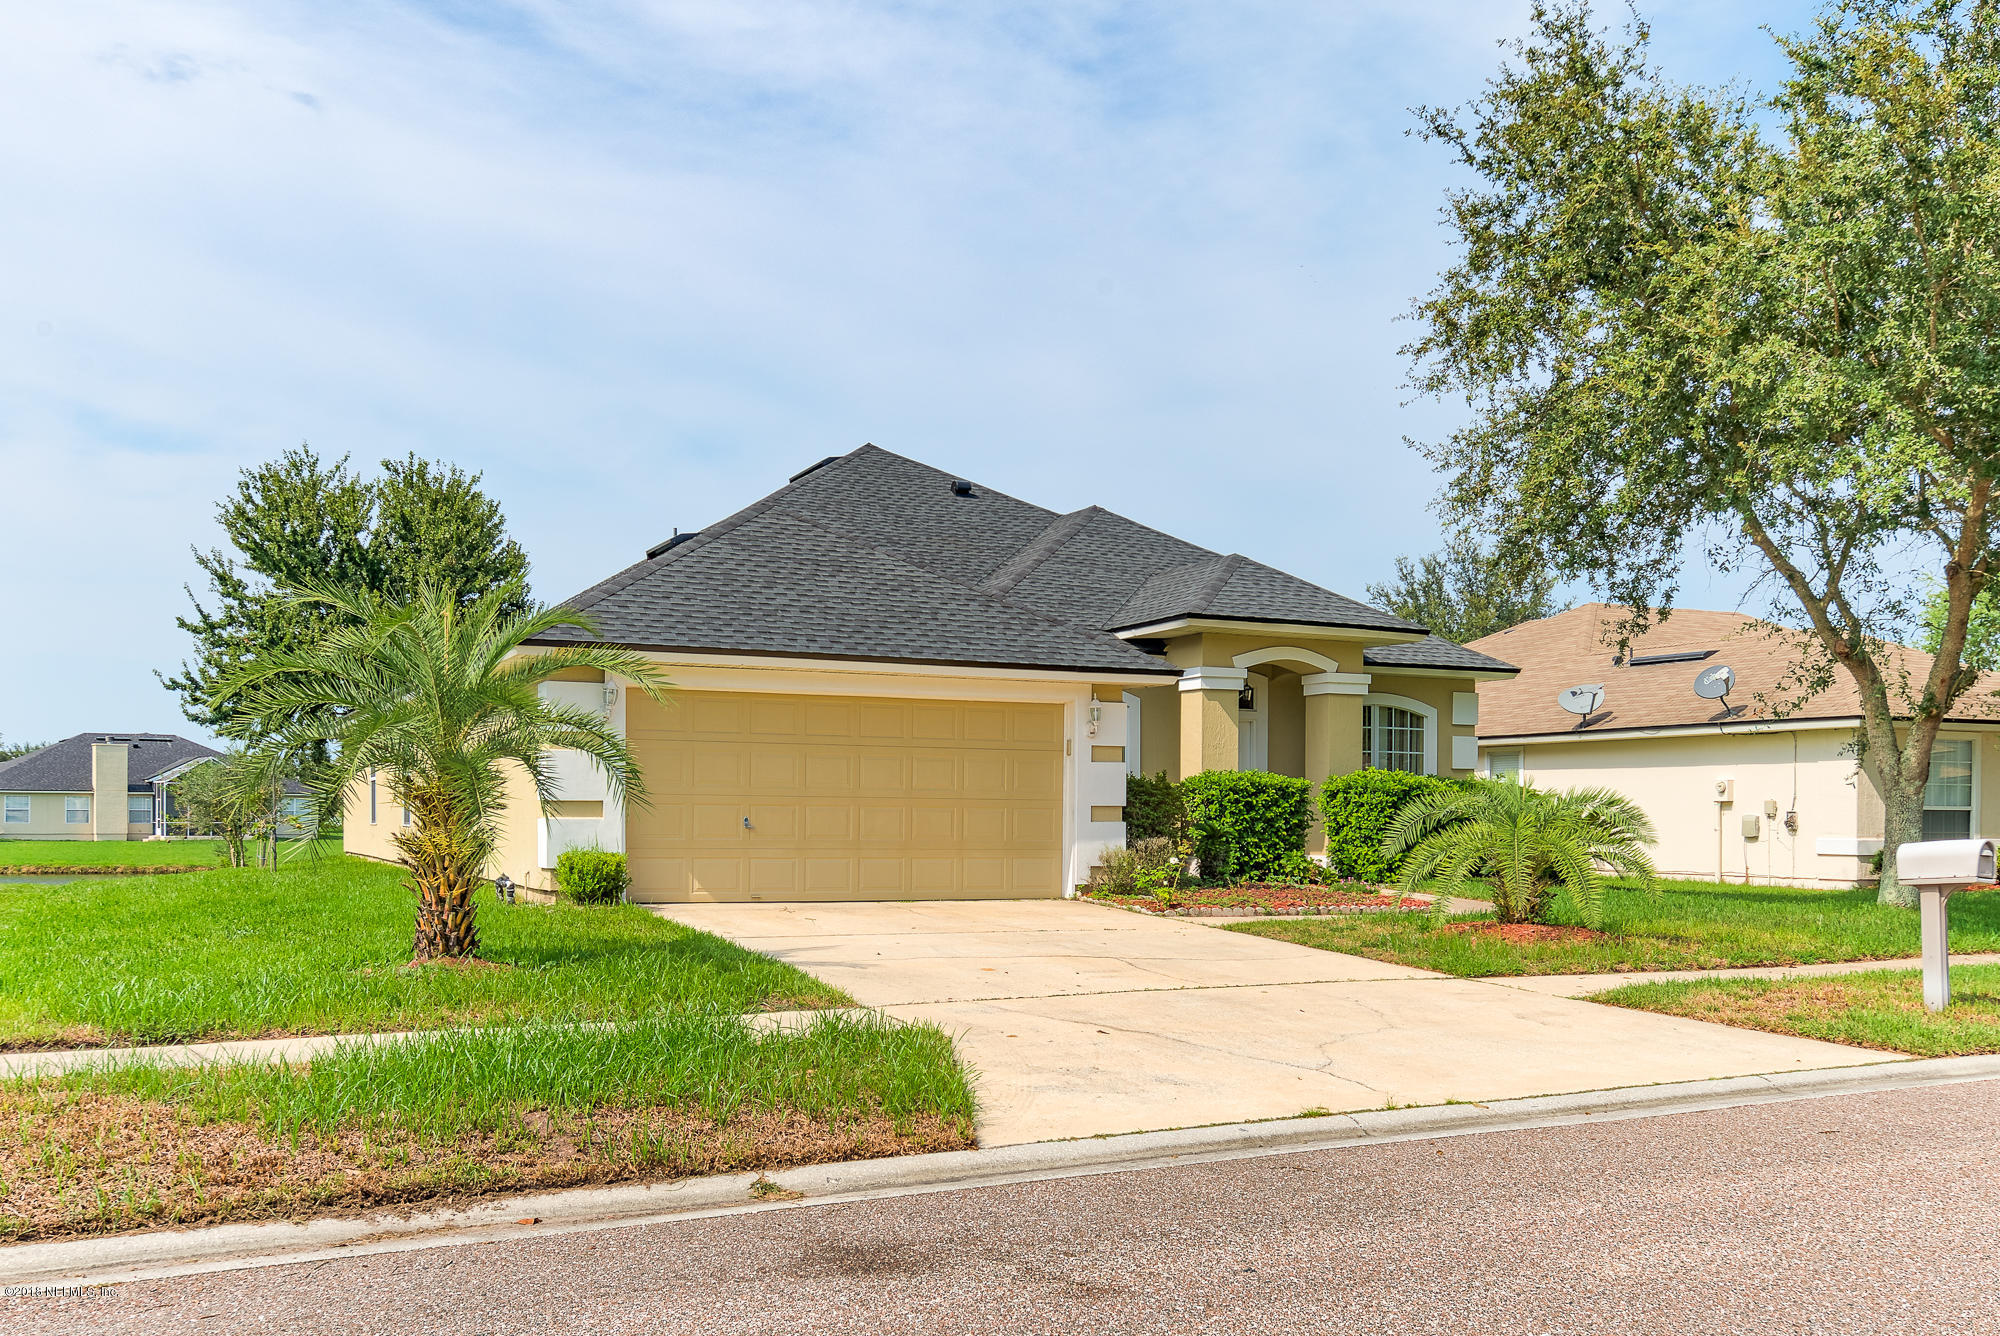 12145 CEDAR TRACE, JACKSONVILLE, FLORIDA 32246, 3 Bedrooms Bedrooms, ,2 BathroomsBathrooms,Residential - single family,For sale,CEDAR TRACE,953415